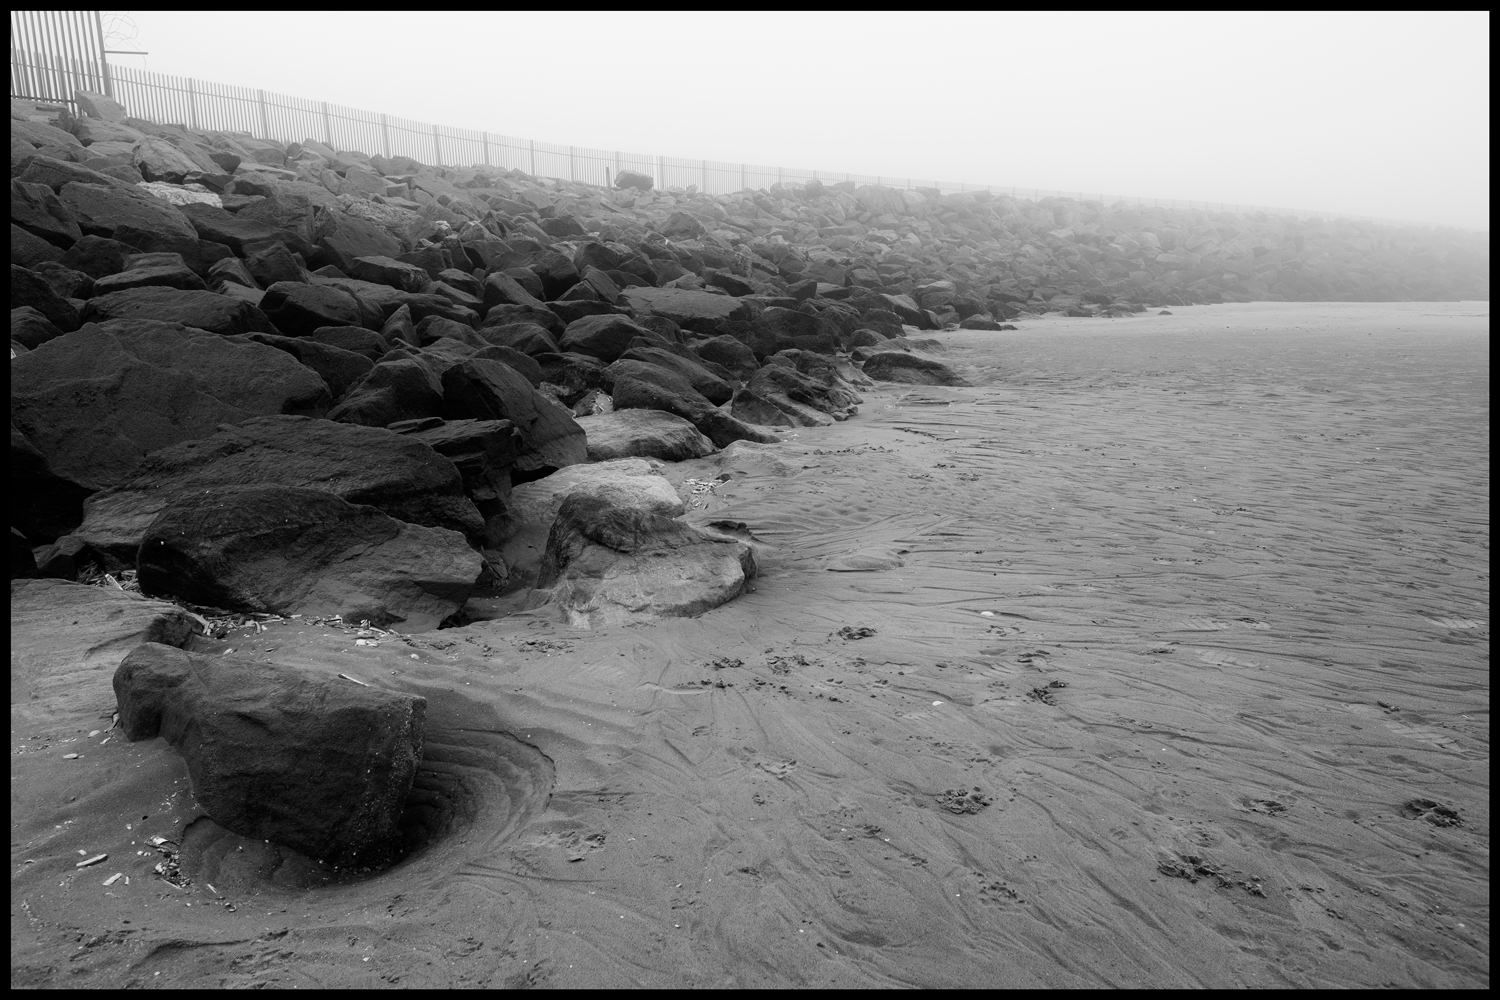 Sand and rocks on the beach. The pile of rocks is disappearing into the fog and there are lots of swirls and patterns in the sand from where the tide goes in and out